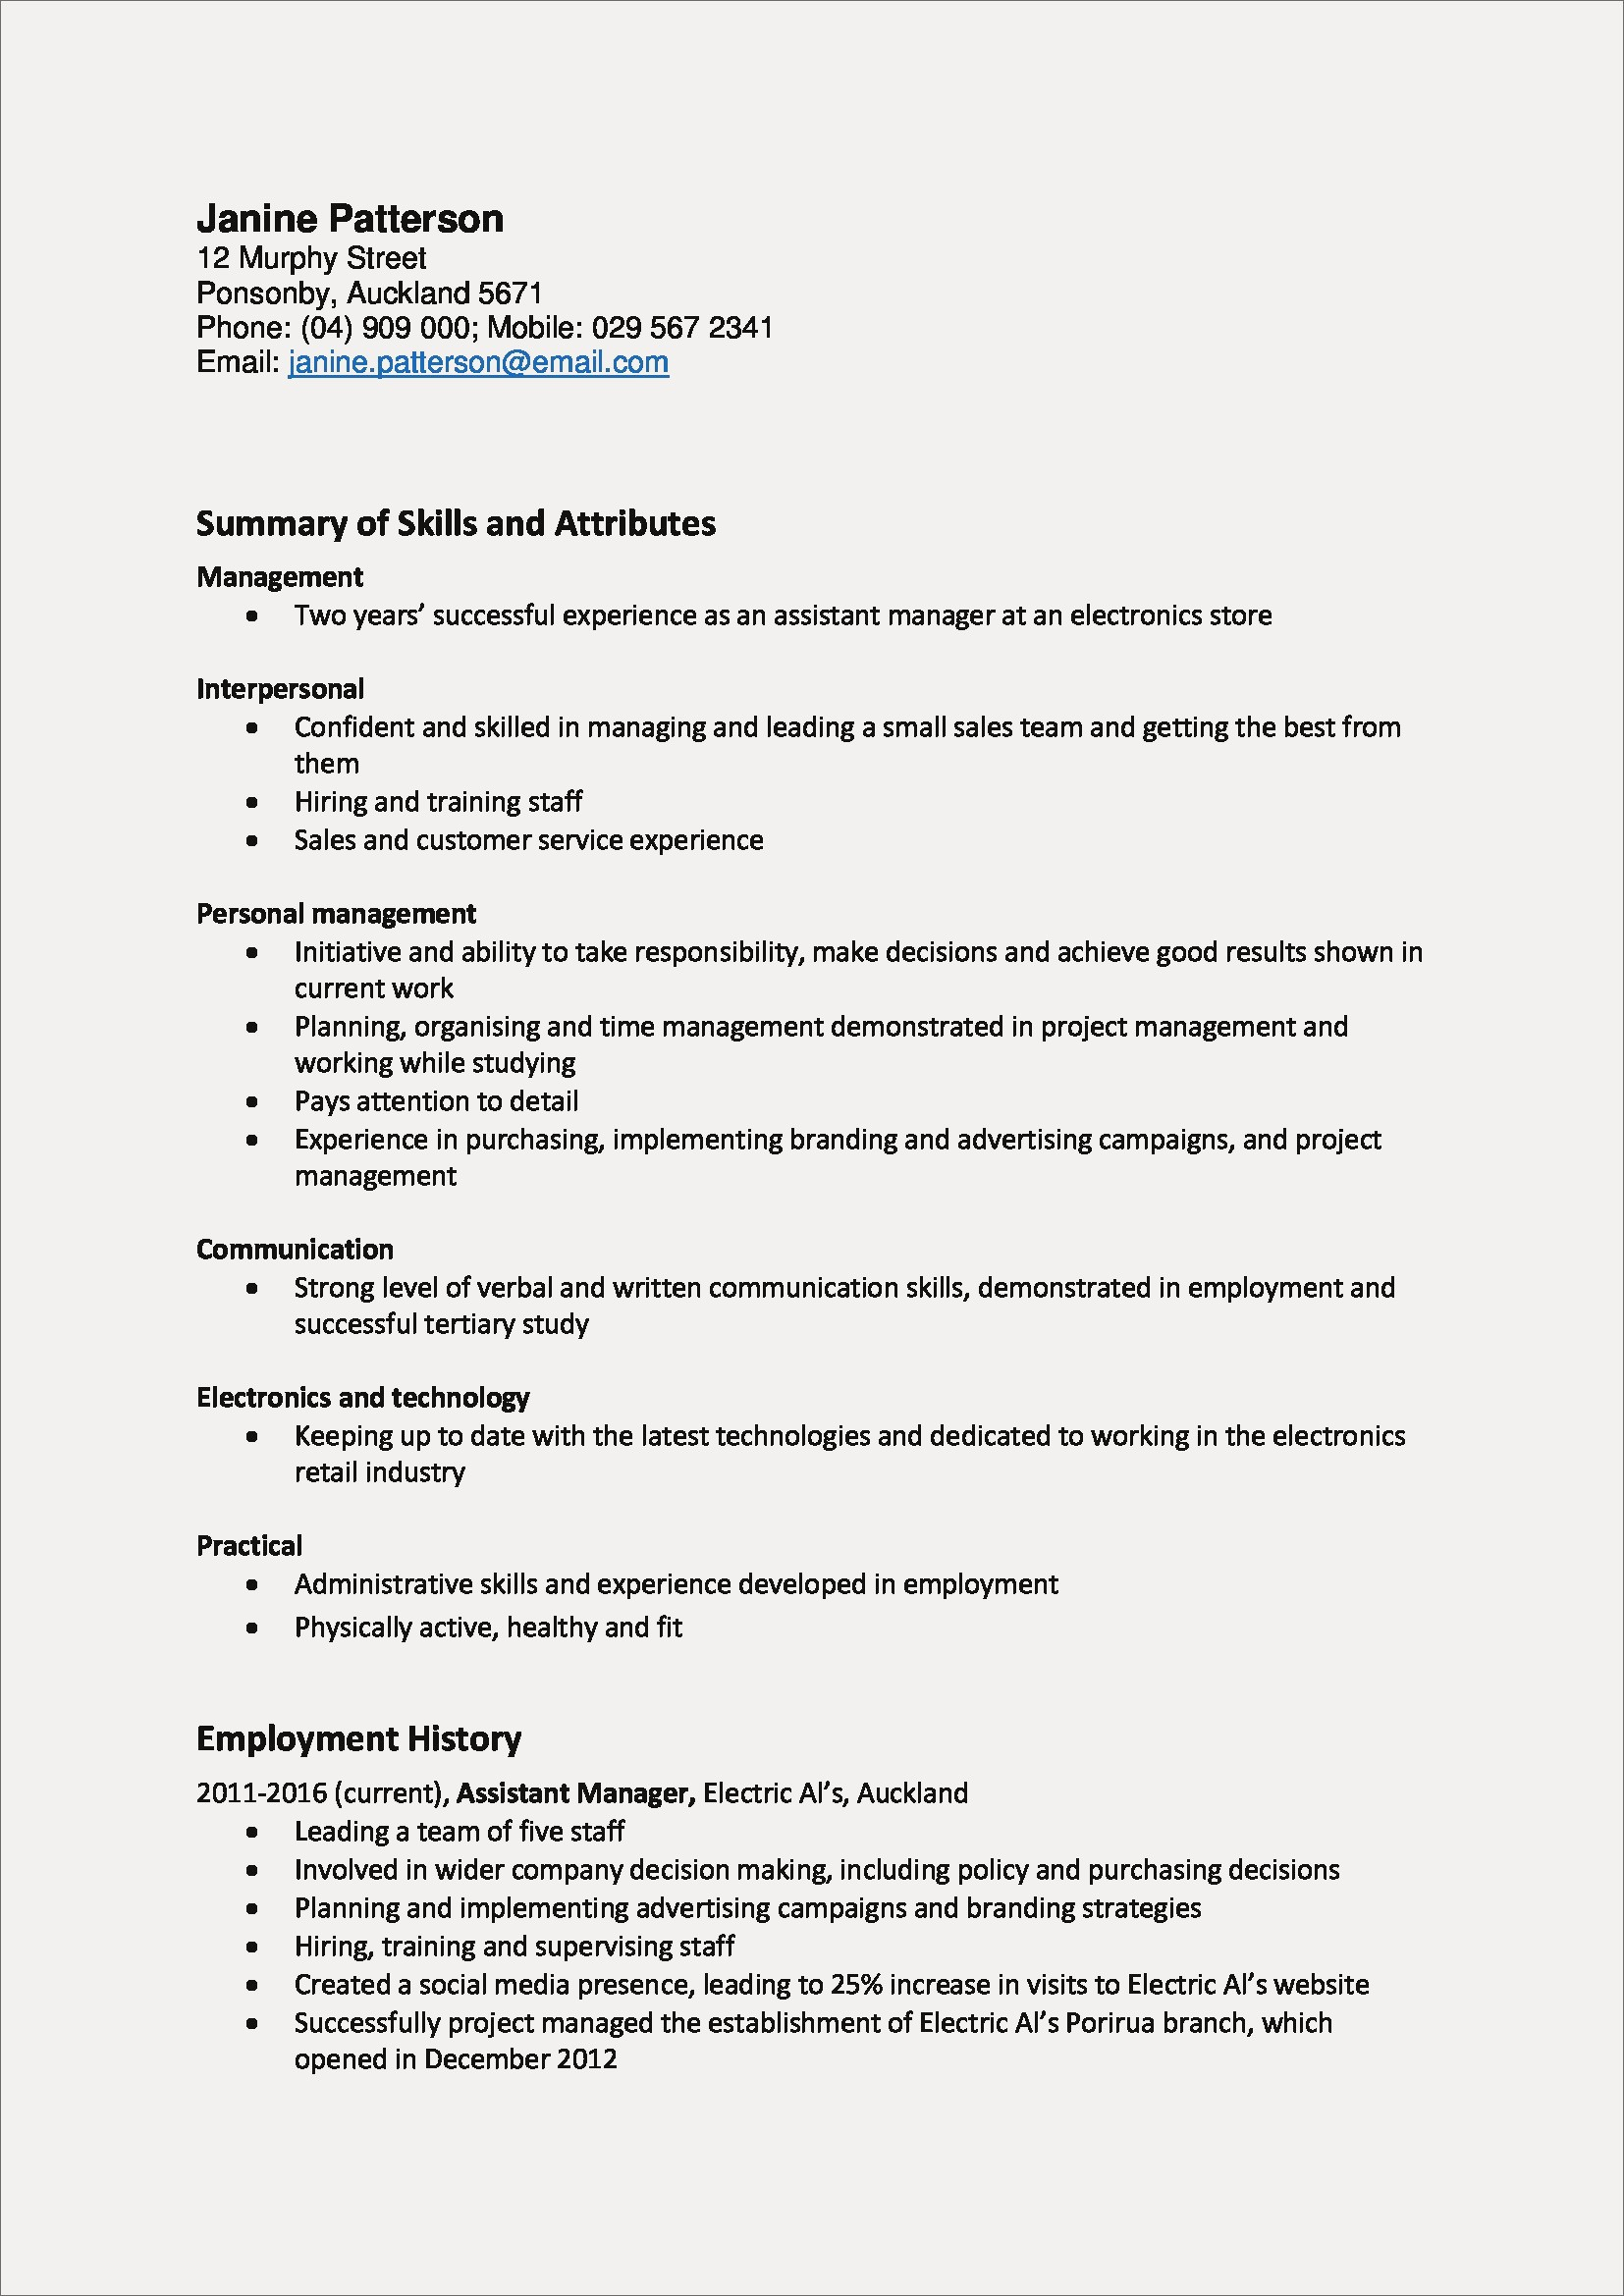 Management Skills Examples for Resume - Skill Examples for Resume New New Skills for A Resume Fishing Resume